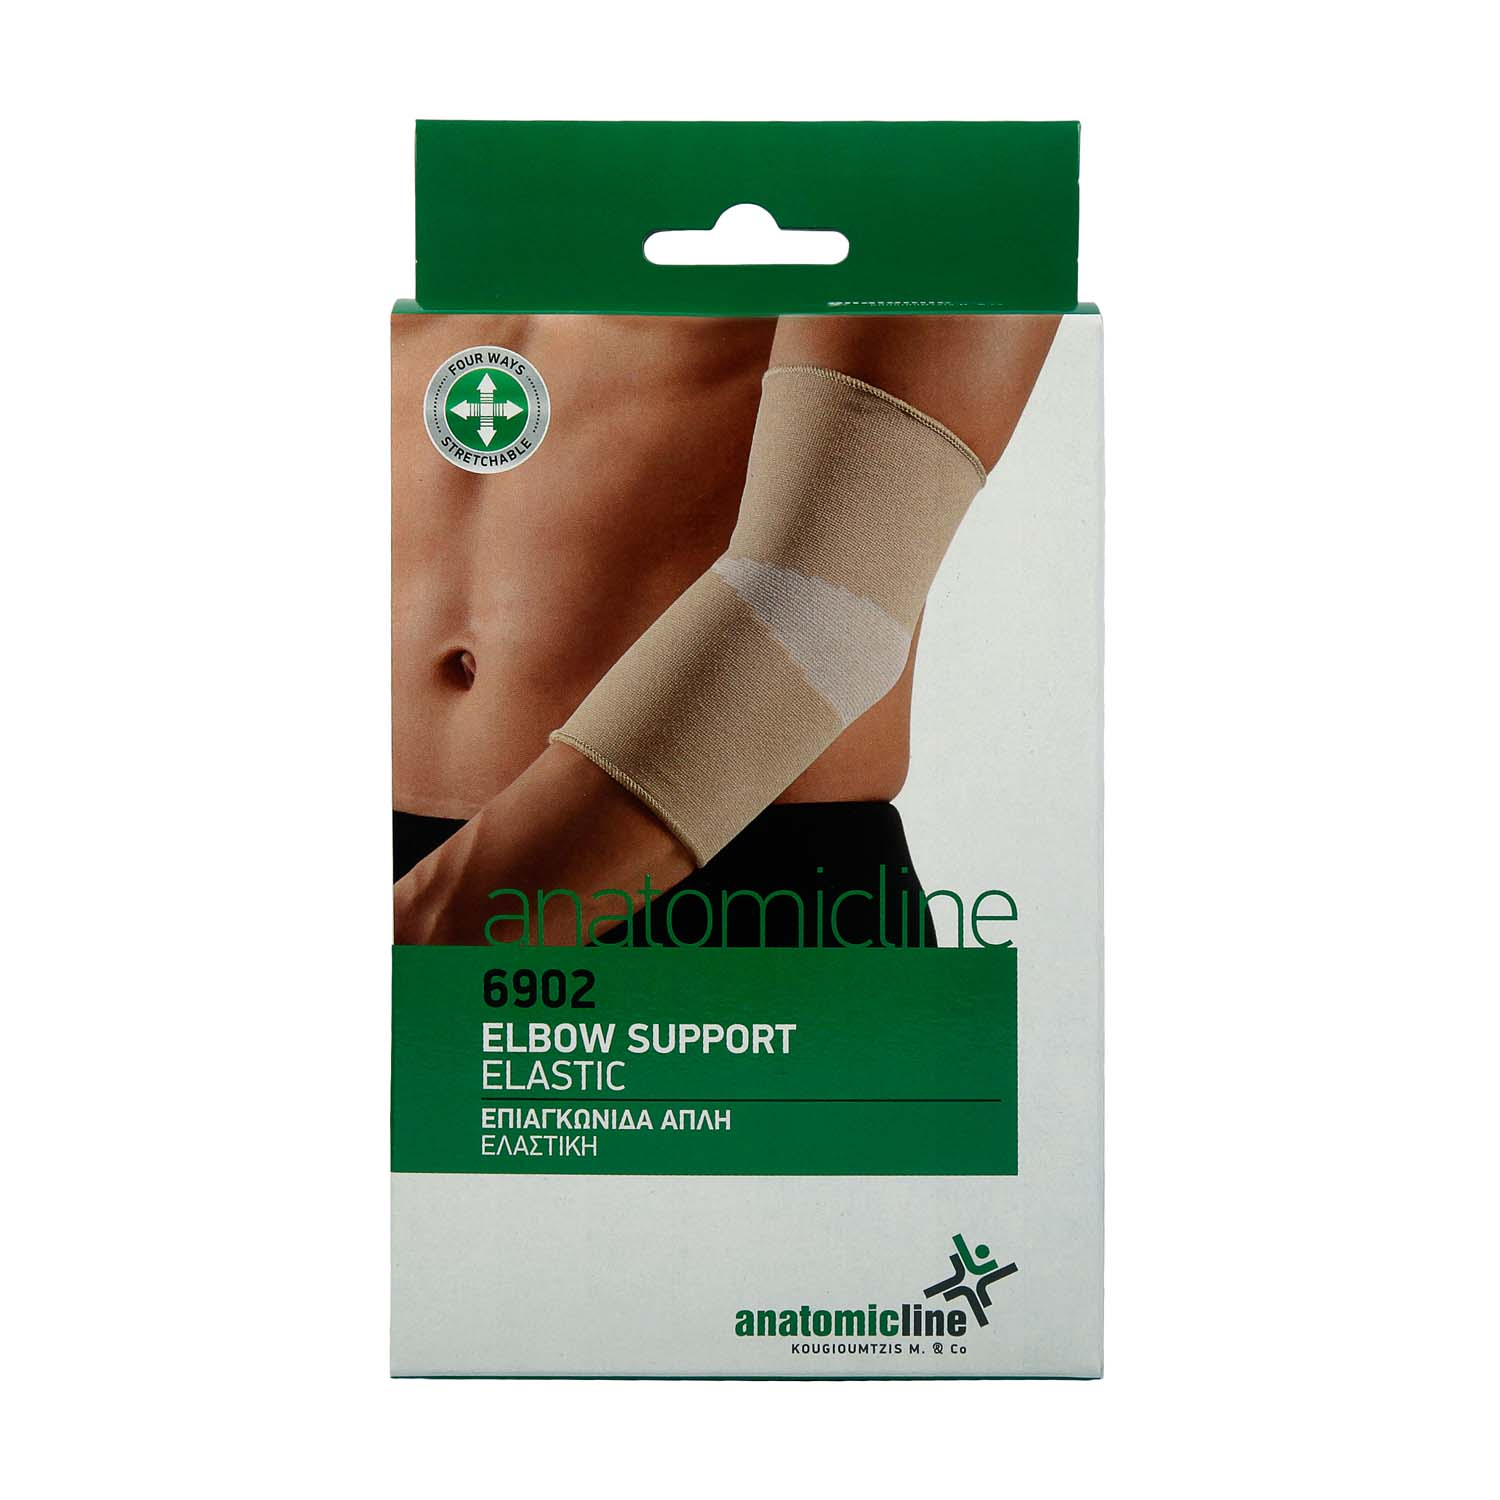 Elbow support - elastic